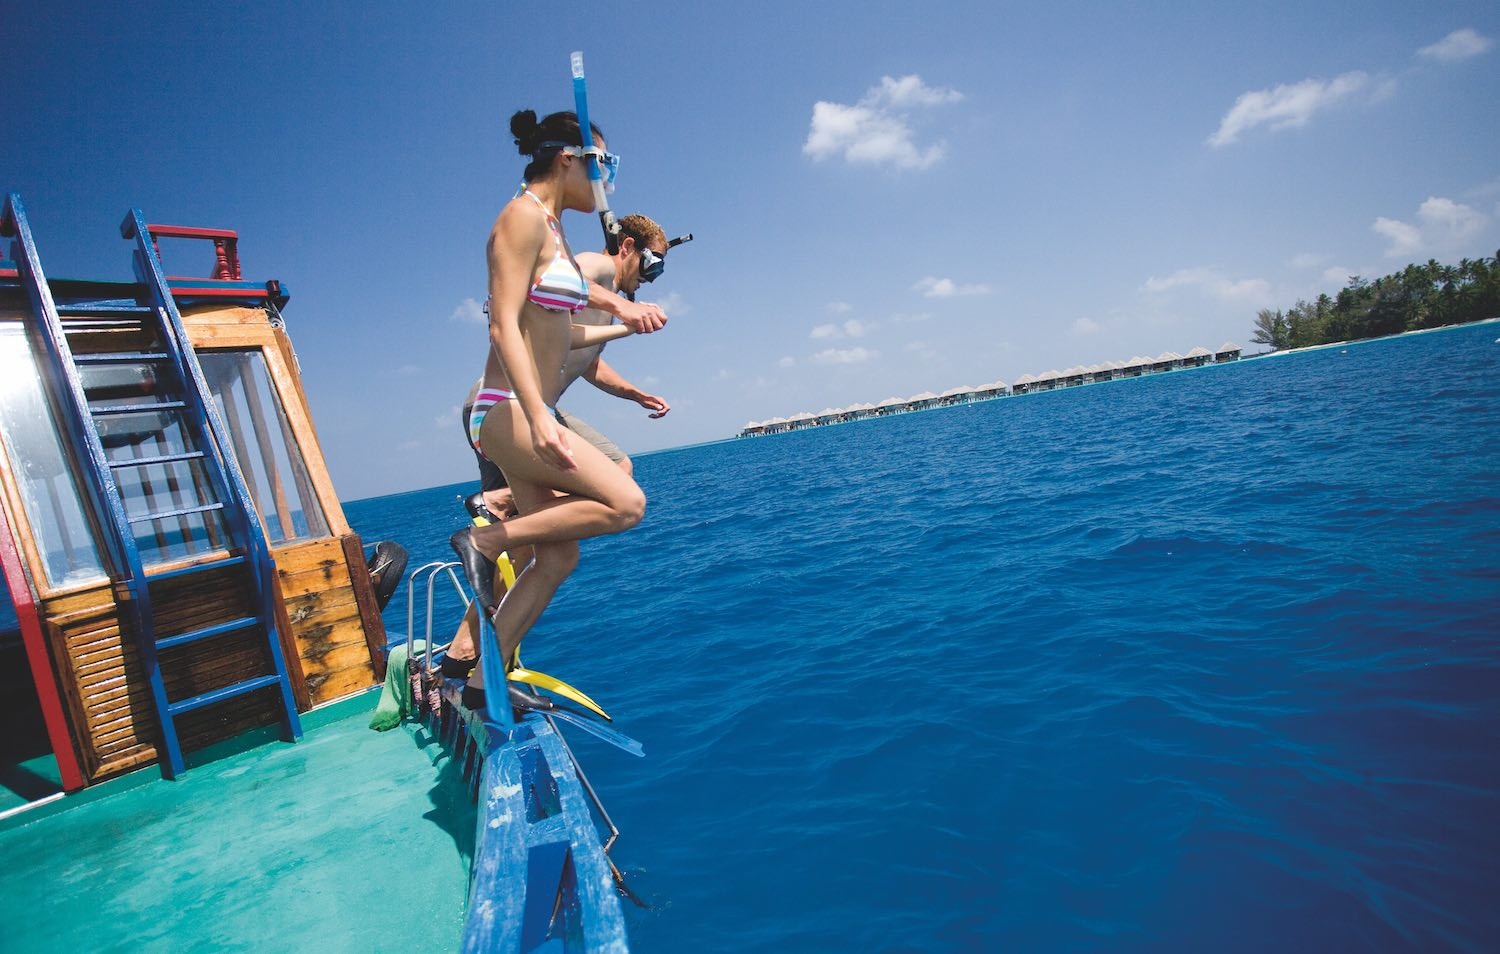 maldives-coco-bodu-hithi-activities-excursions-snorkelling-2-holiday-honeymoon-vacation-invite-to-paradise.jpg